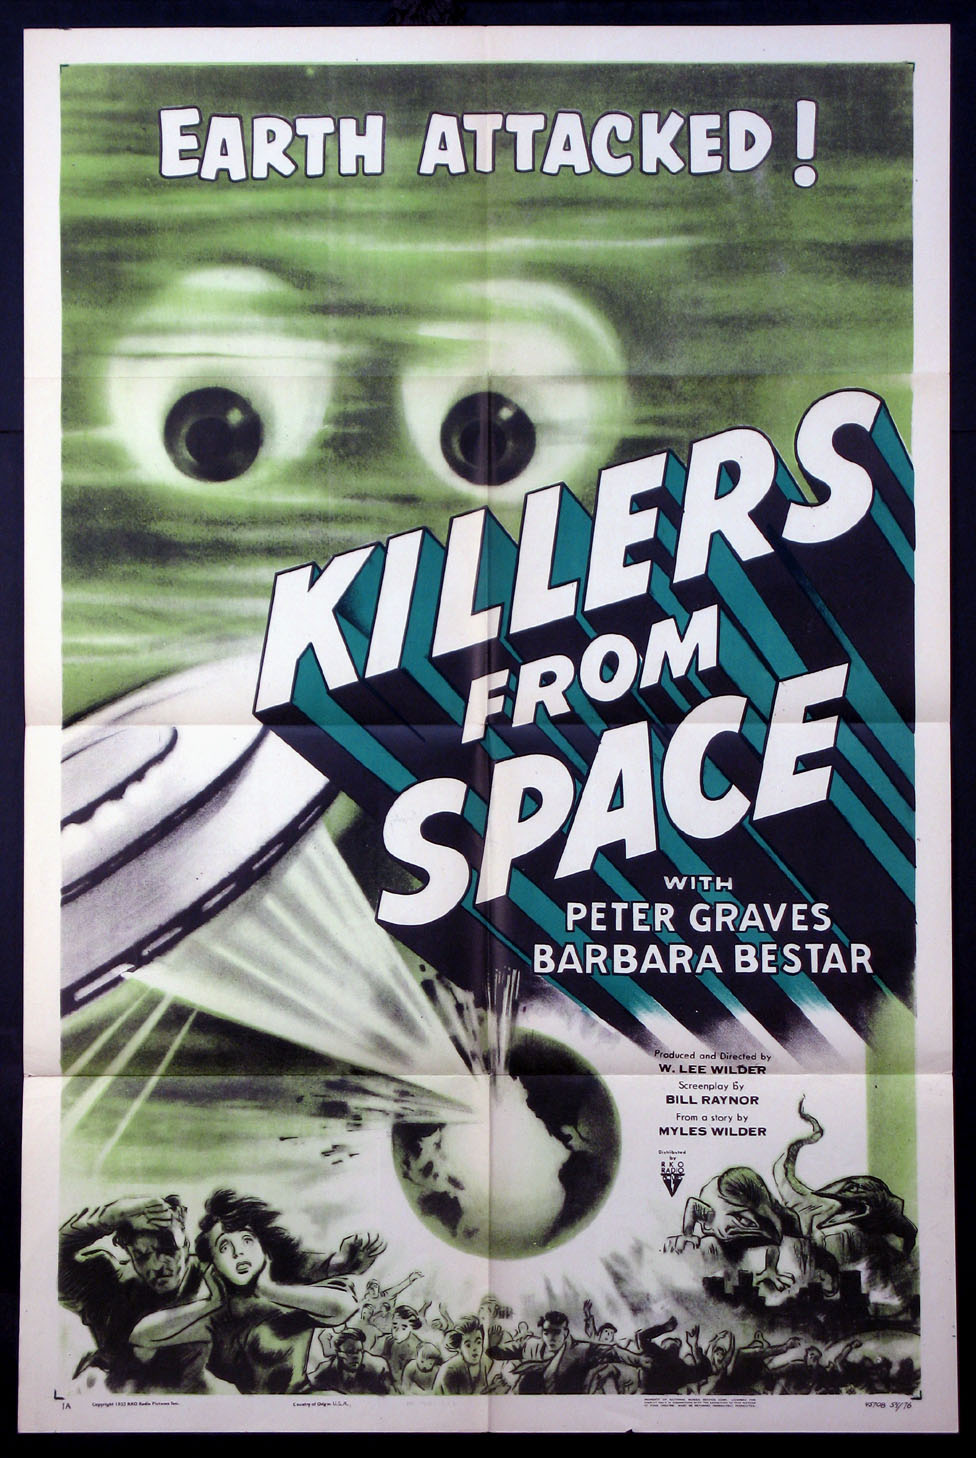 KILLERS FROM SPACE @ FilmPosters.com